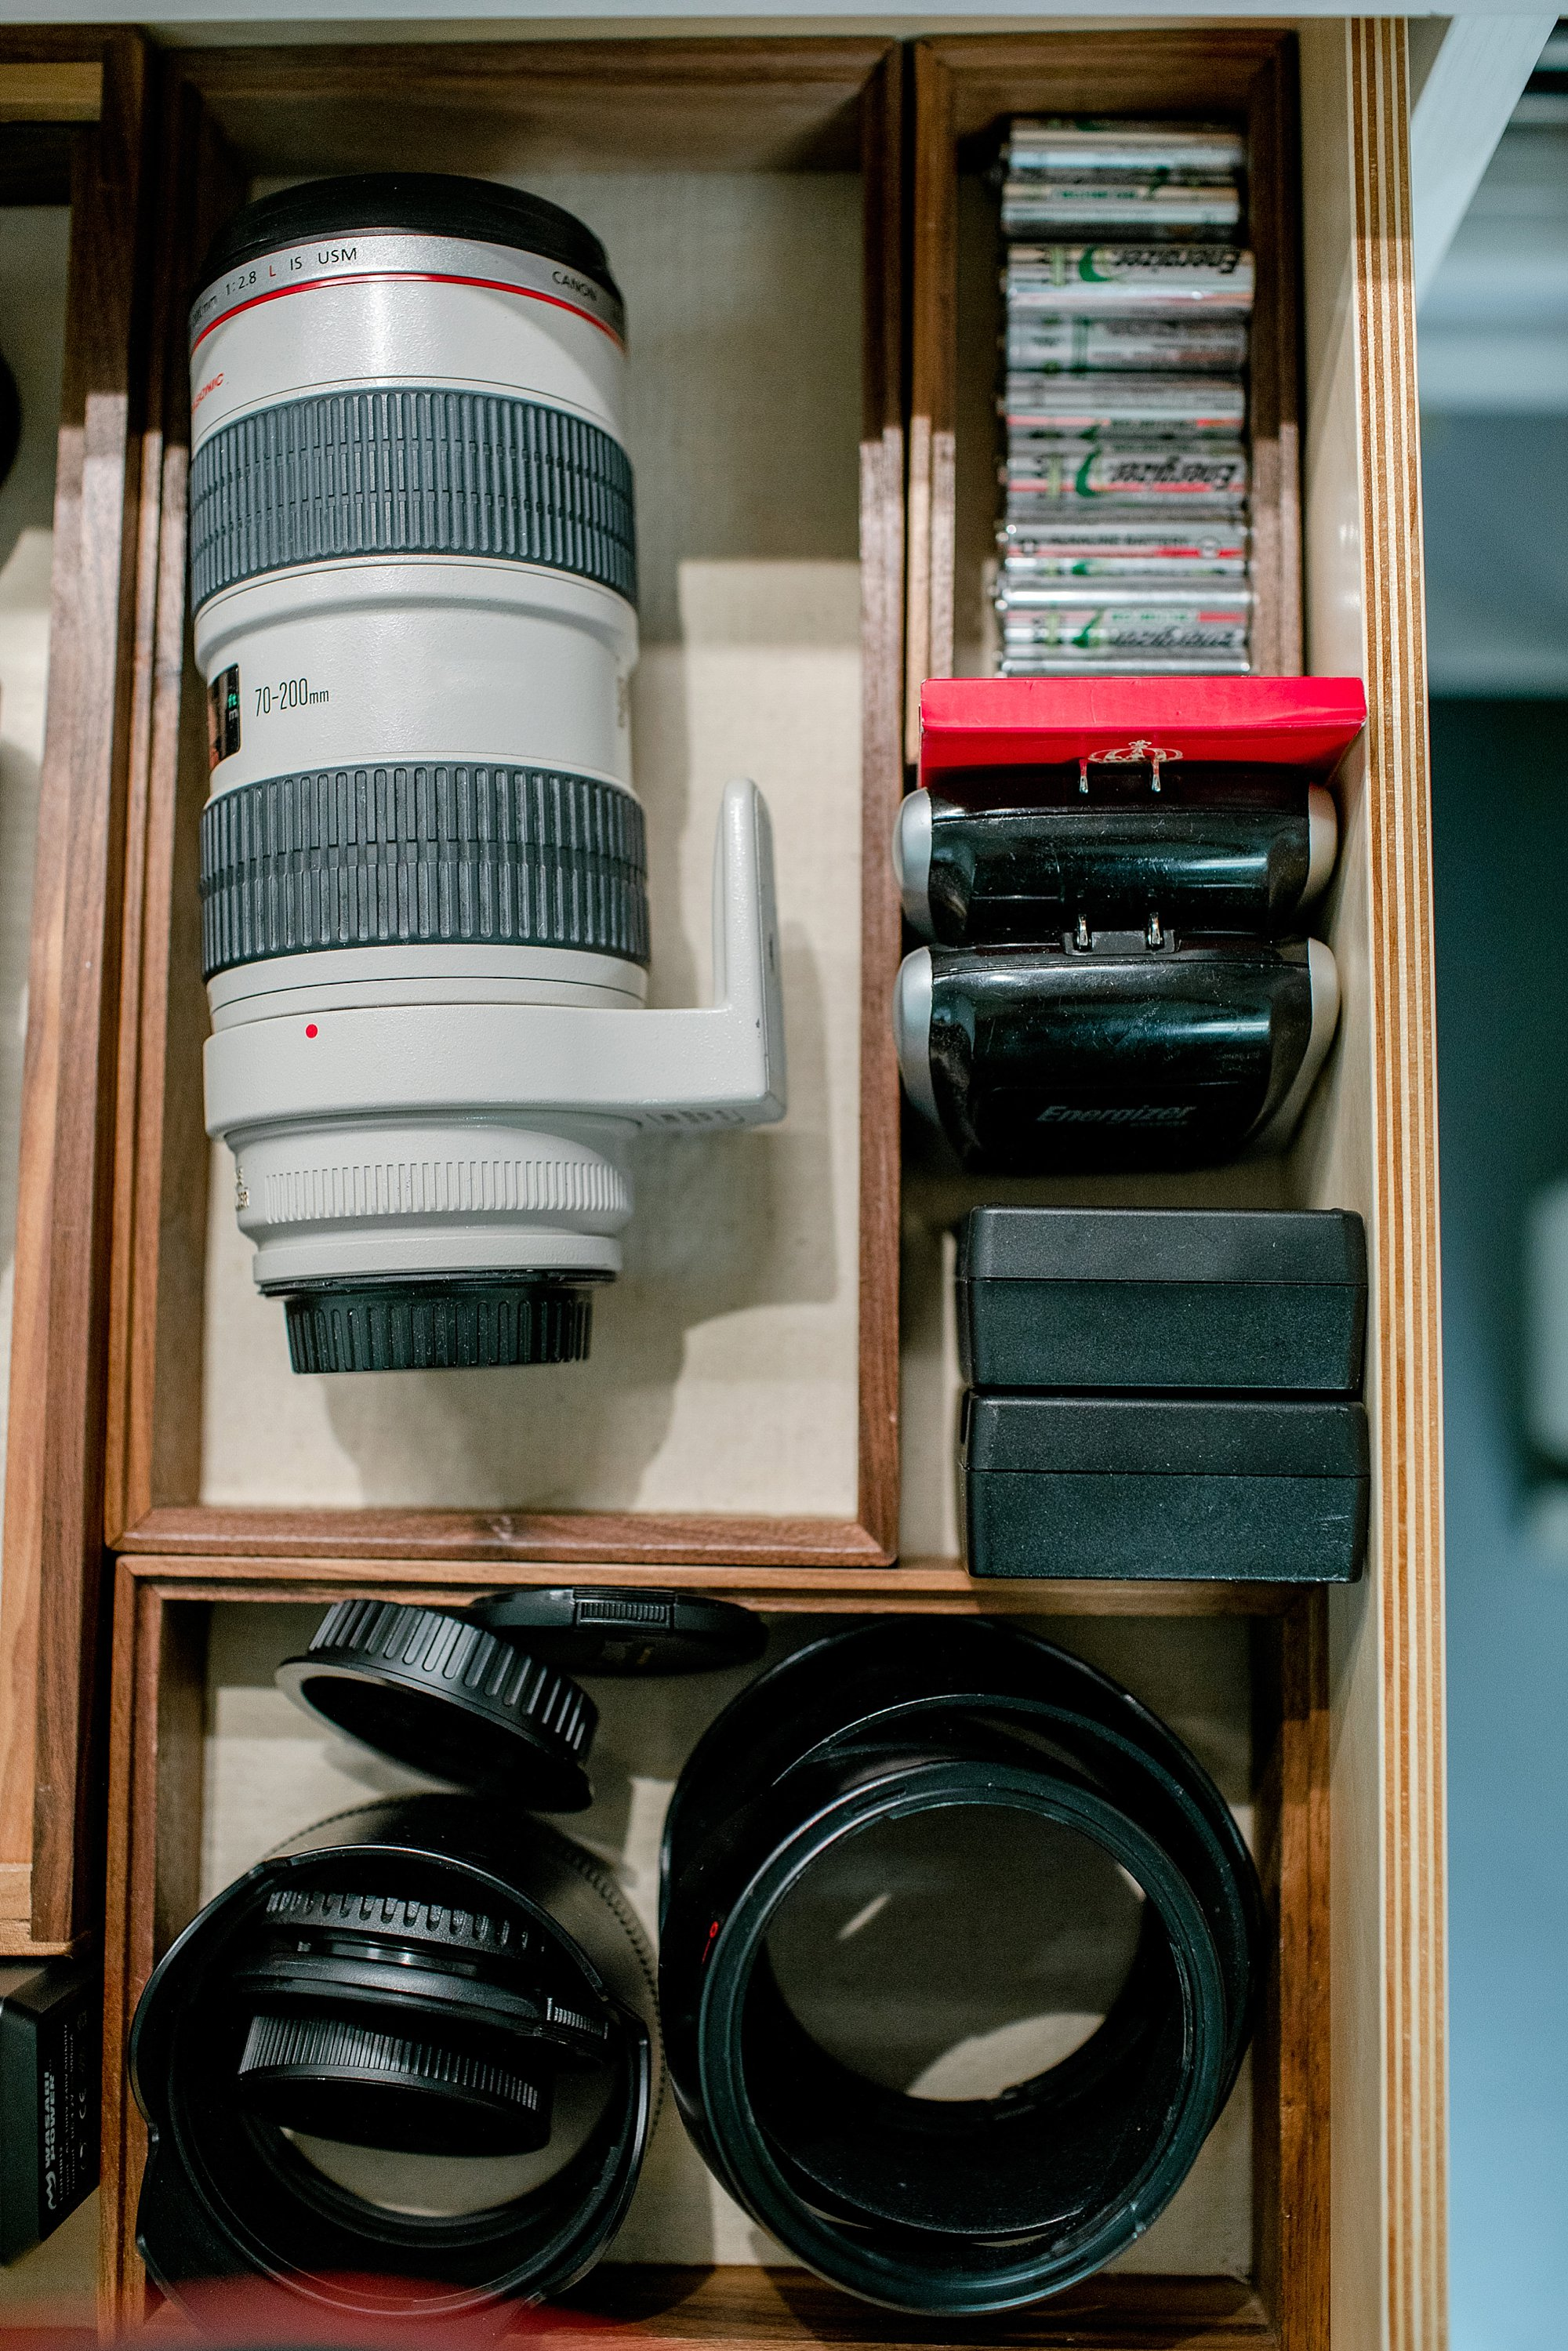 camera lens organization and batteries and accessories using utensil drawer organizers, see more on the blog post #organization #lenses #photography #photostudio